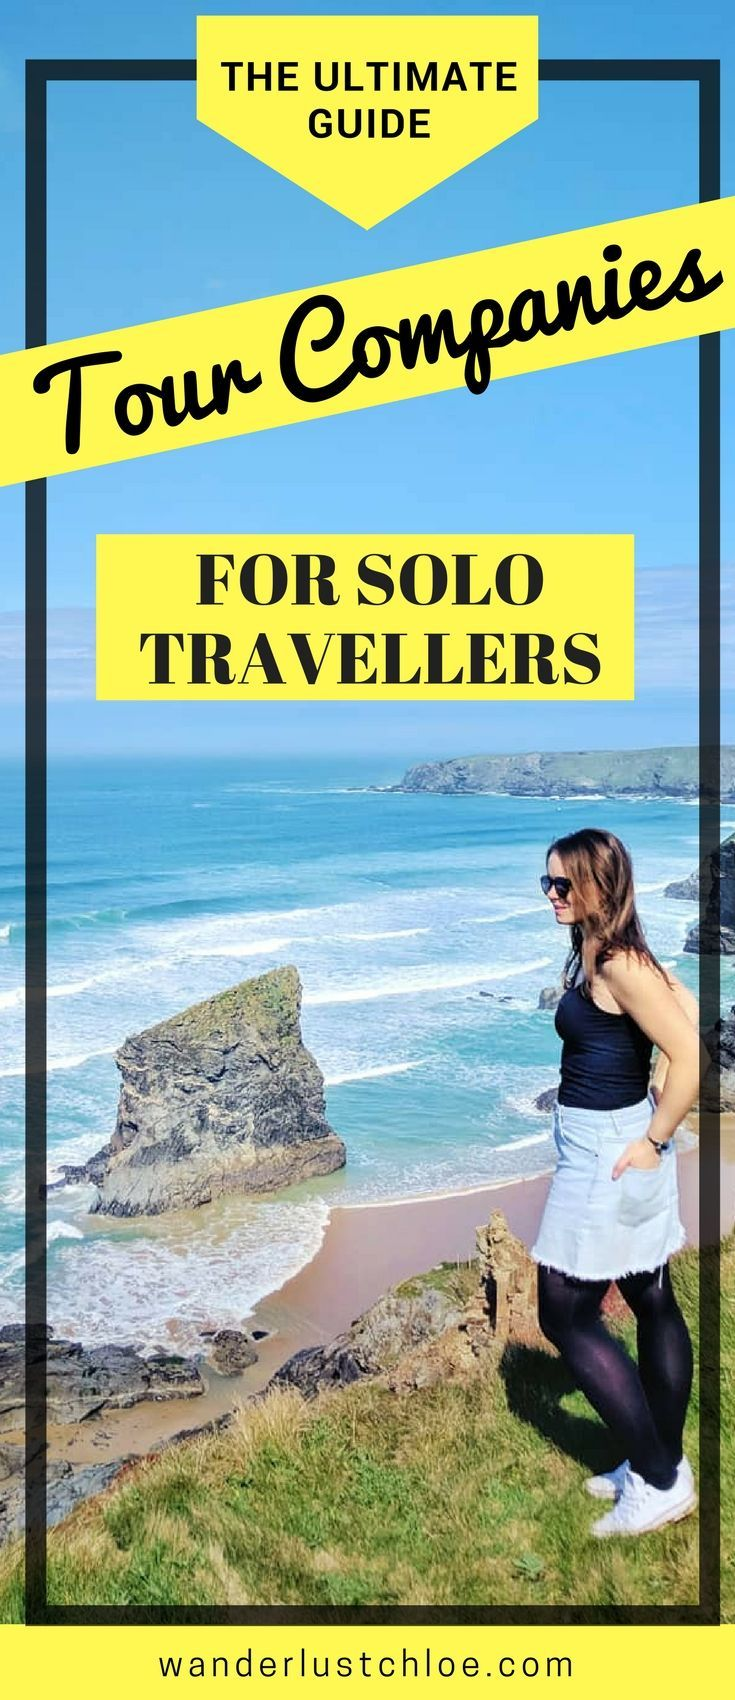 Best Tour Companies For Solo Travellers. My pick of the best group tour companies for solo travellers! From Intrepid and Trek America, to Busabout, Contiki, MedSailors and Travel Talk Tours – who offers the best experience for solo travellers? It's time to compare the top group tour companies. #solotravel #solofemaletravel #tourcompany